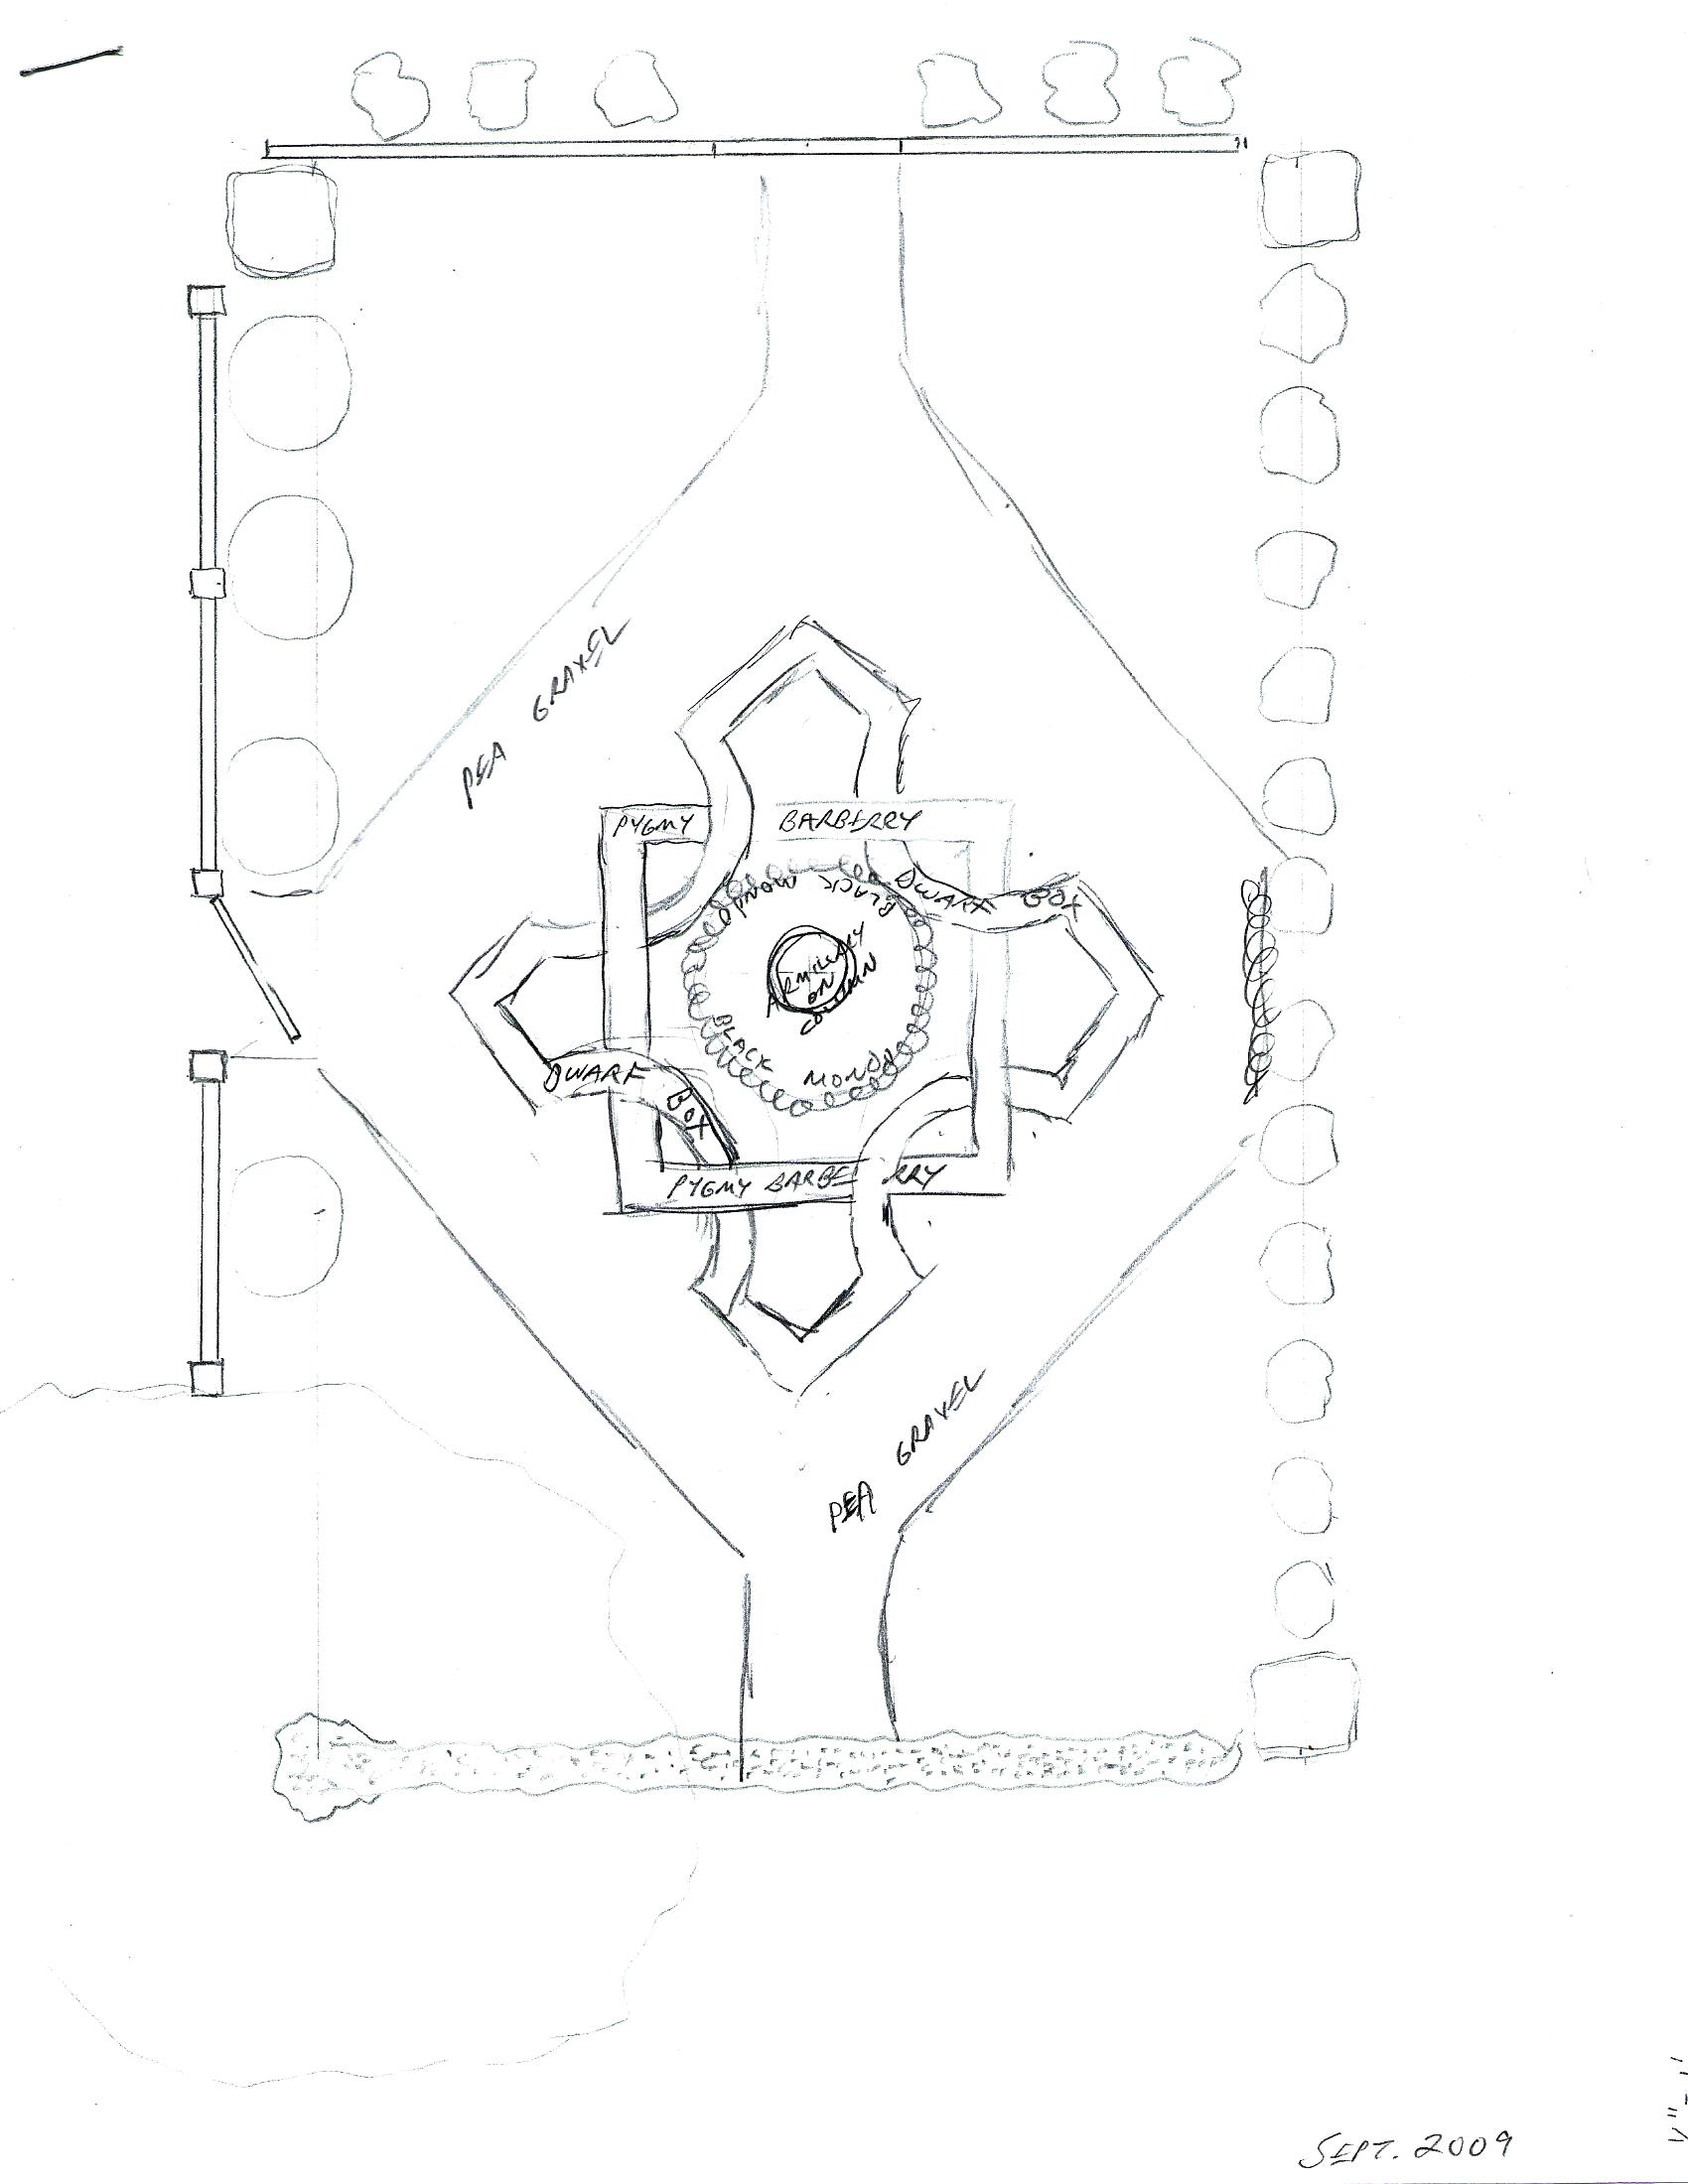 Elysium's Knot Garden (original sketch of layout)